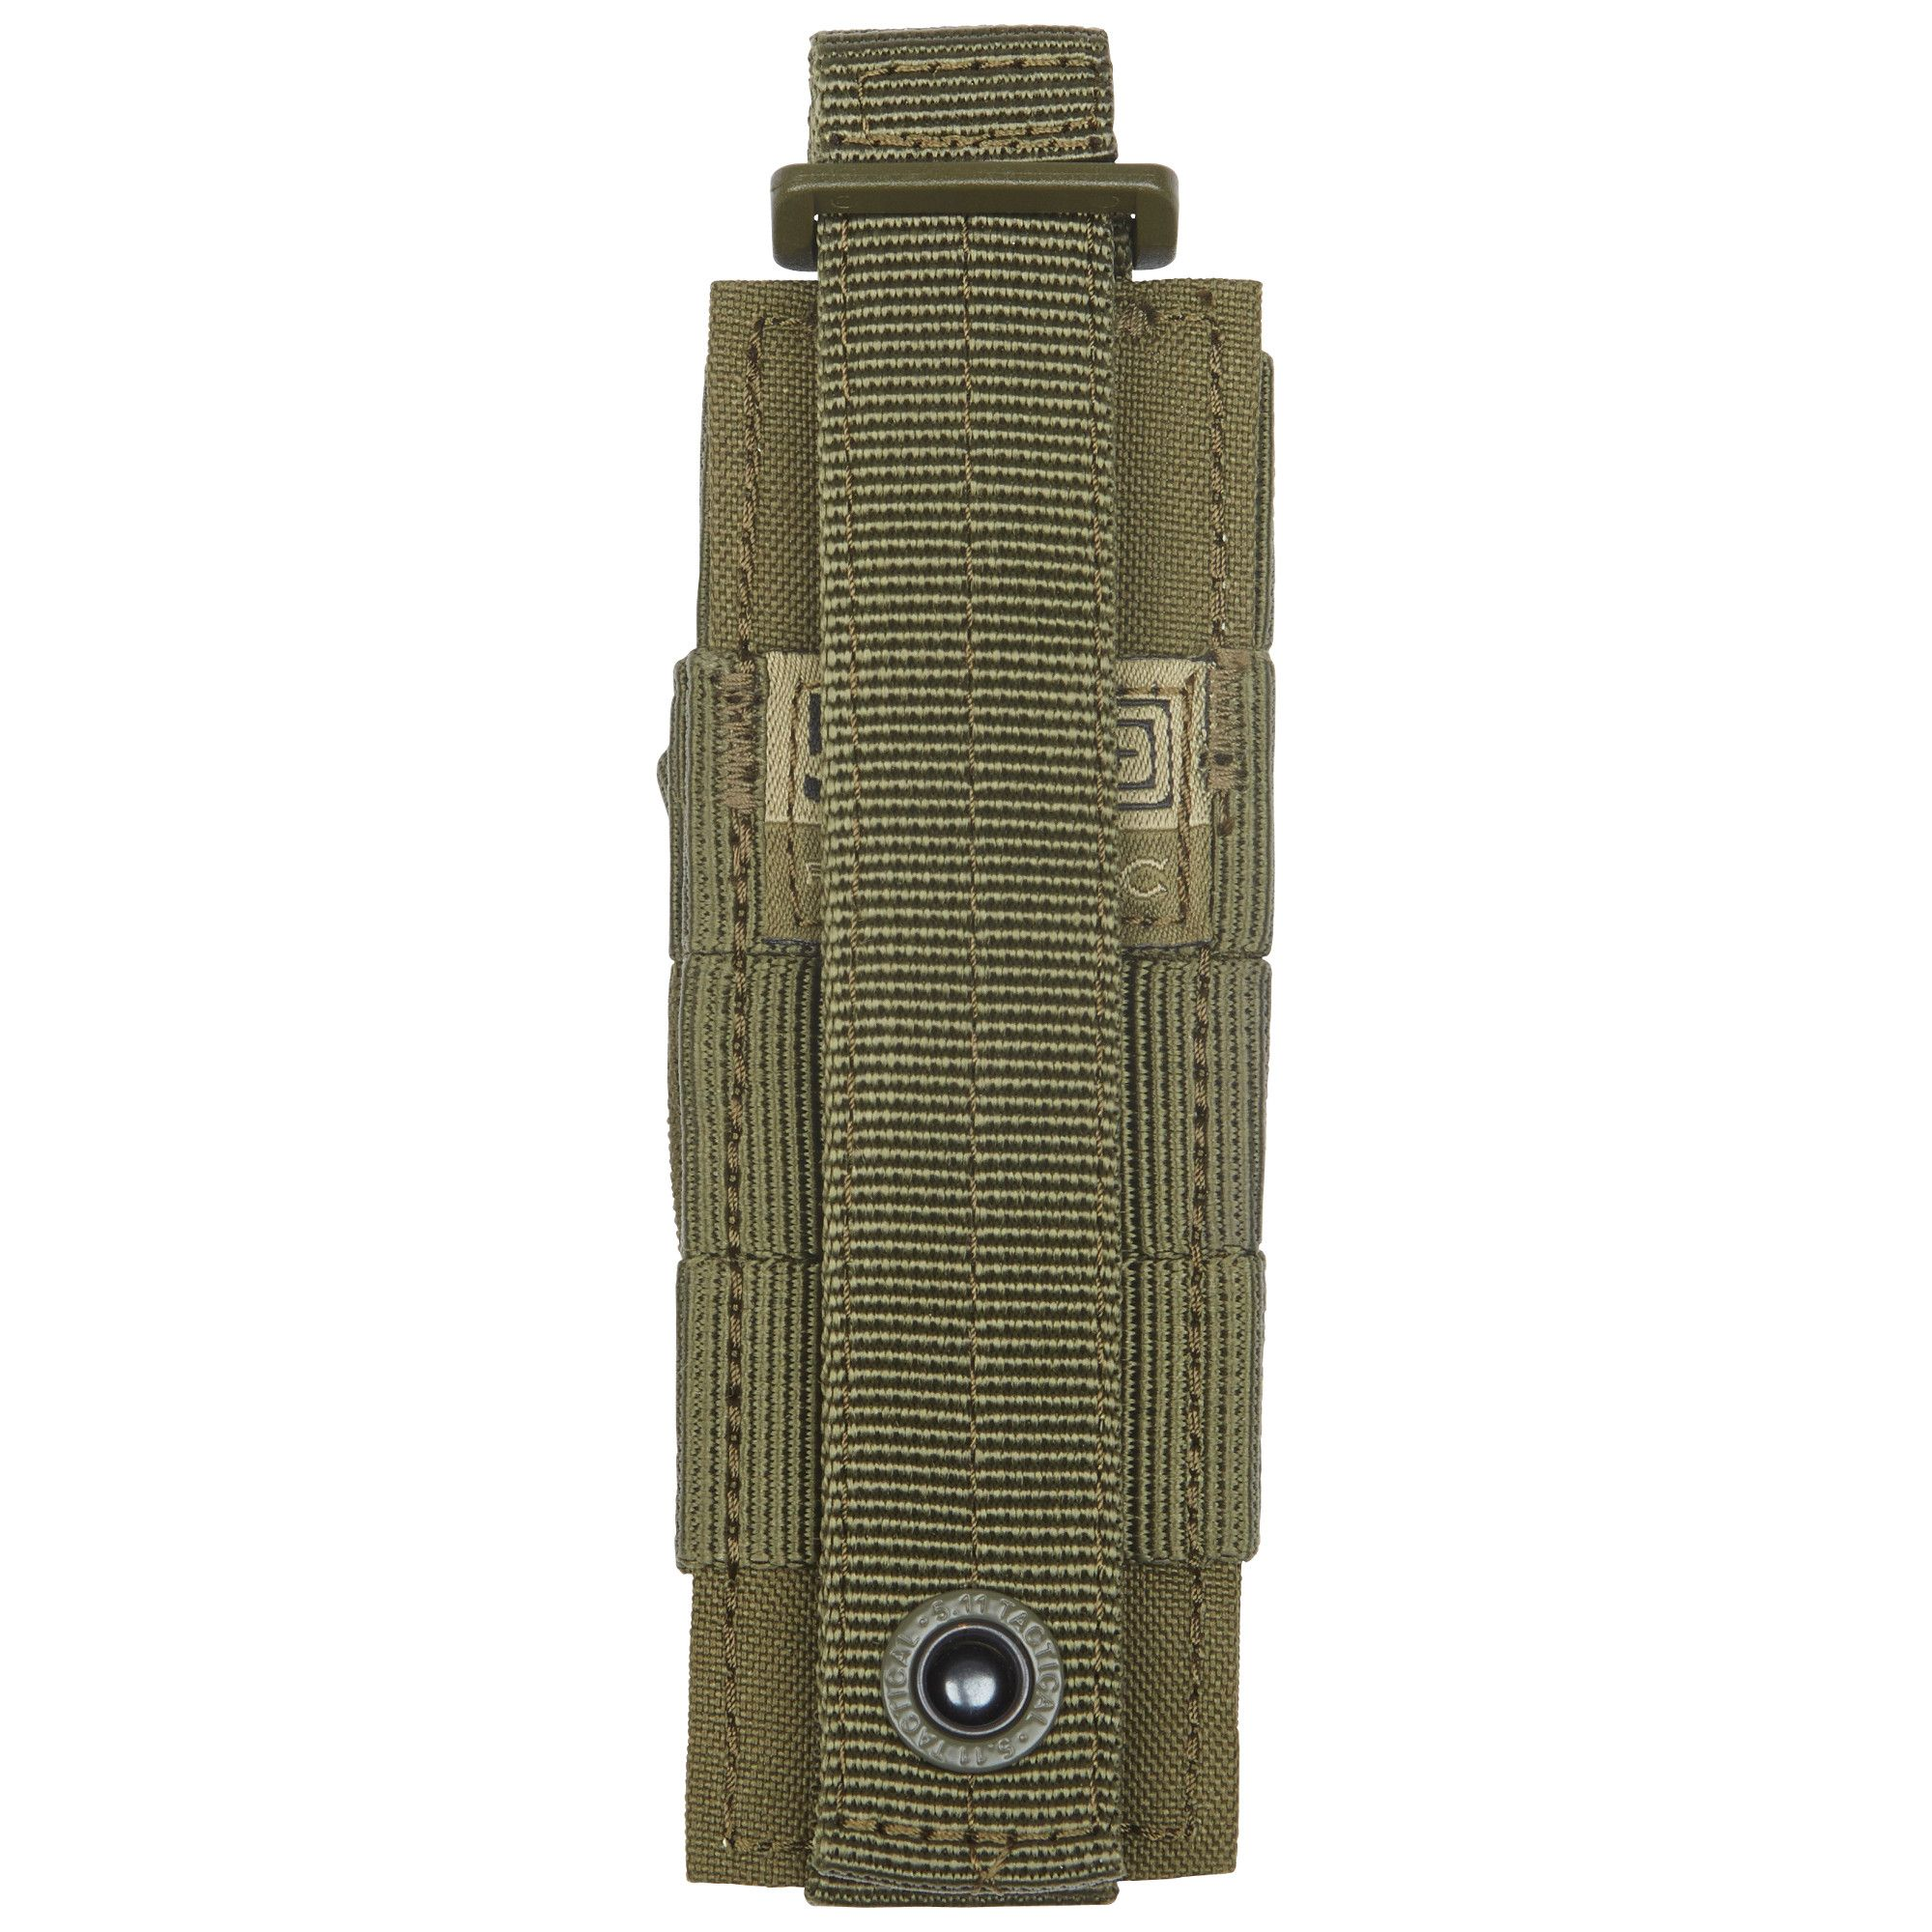 PISTOL BUNGEE/COVER – Tac OD